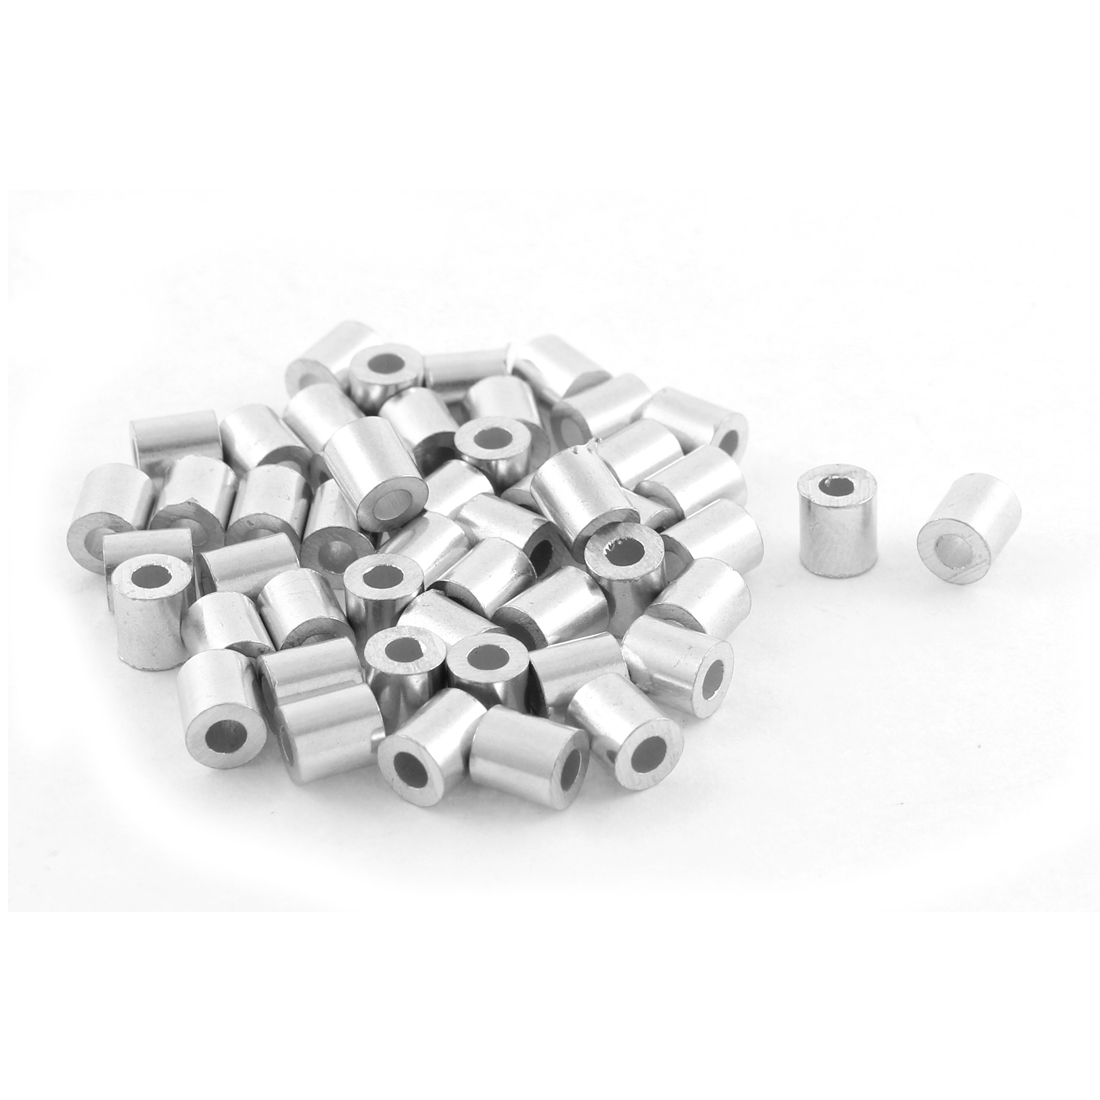 50pcs Aluminum Cable Stops Sleeves for 2mm Wire Rope Swage Clip